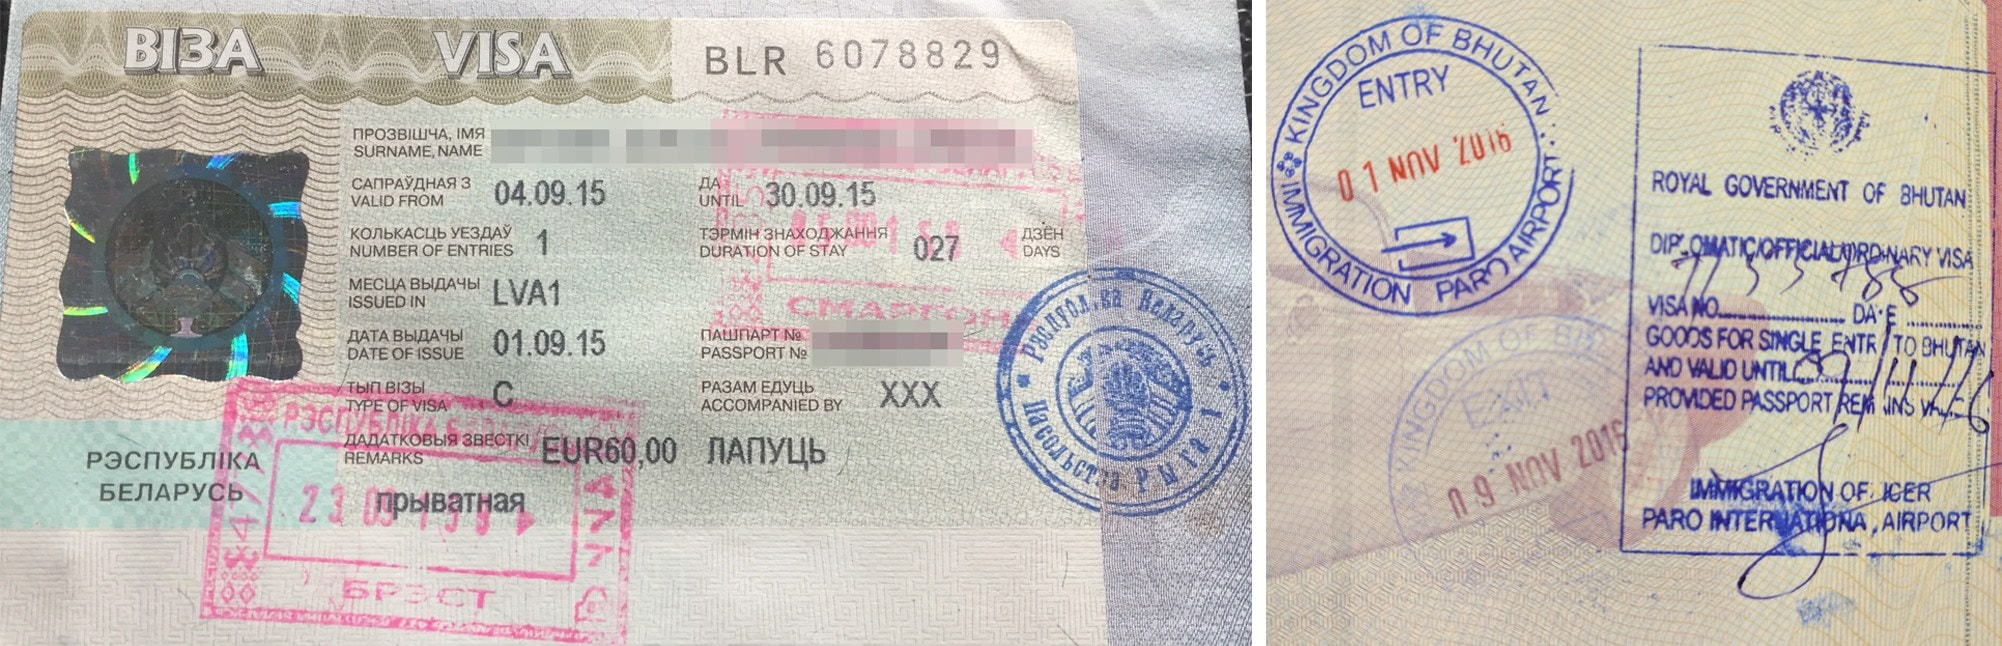 Passport stamp for Belarus and Bhutan